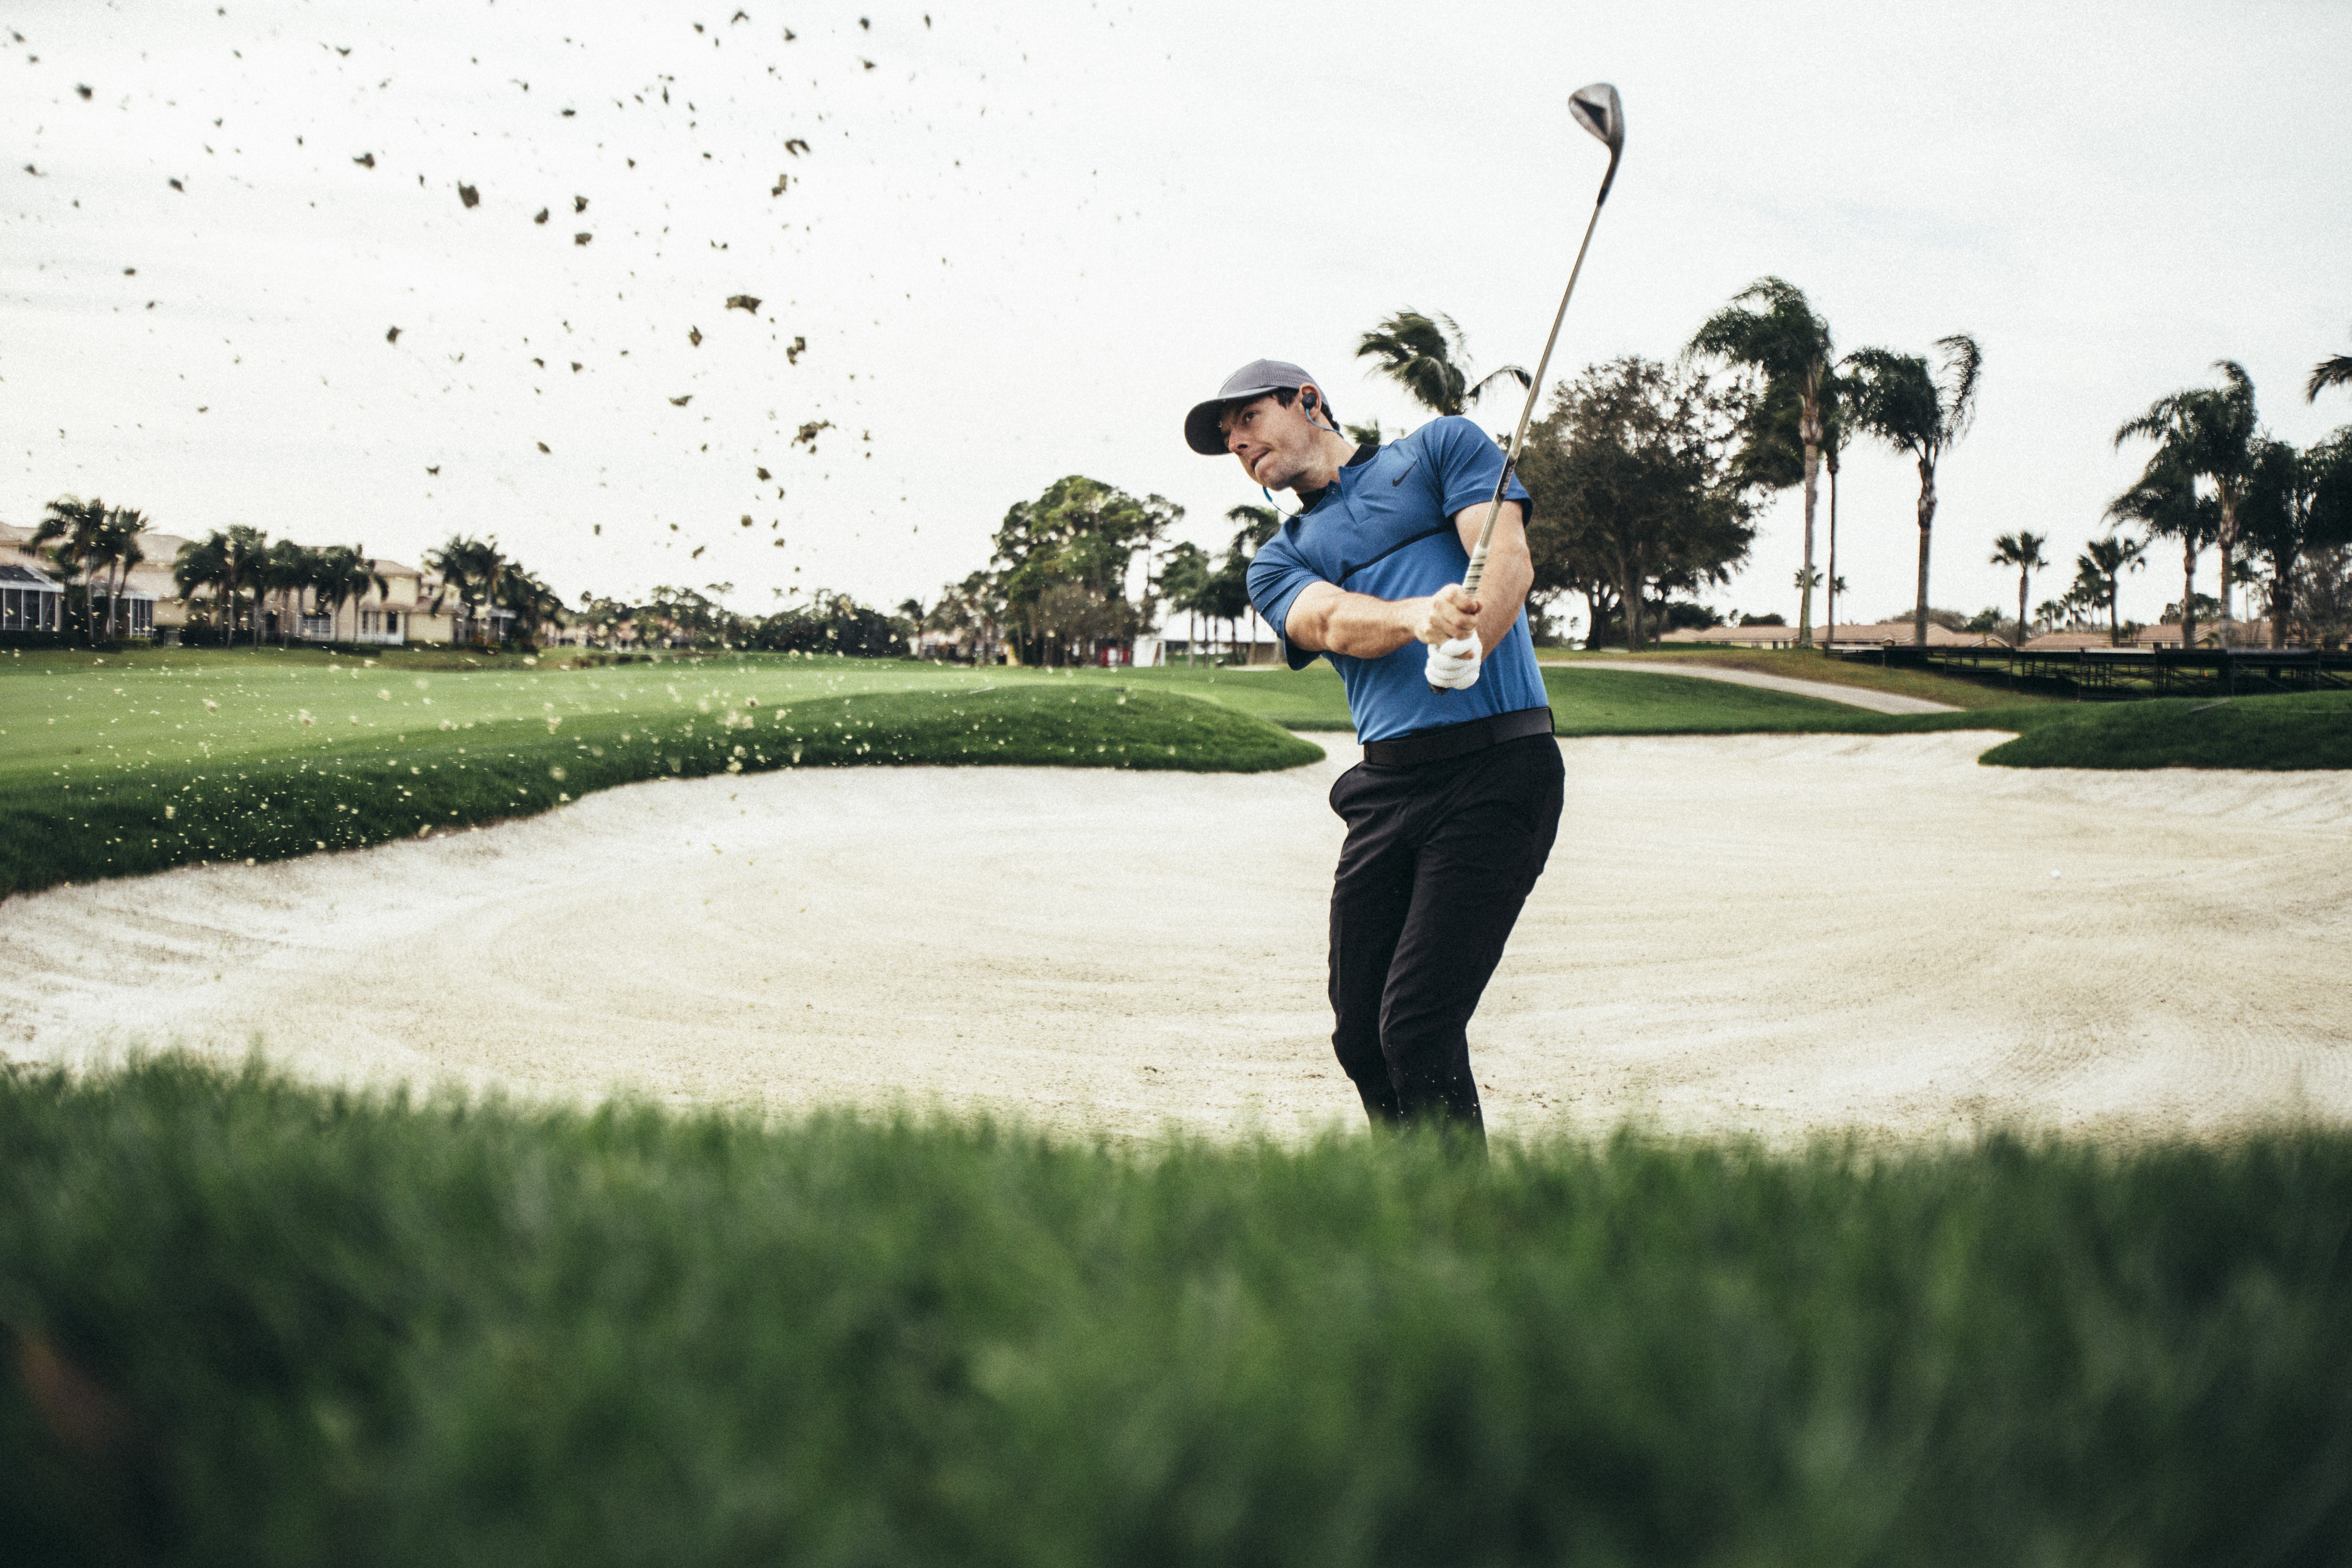 Rory_McIllroy_Golf_Course_Ice_0654